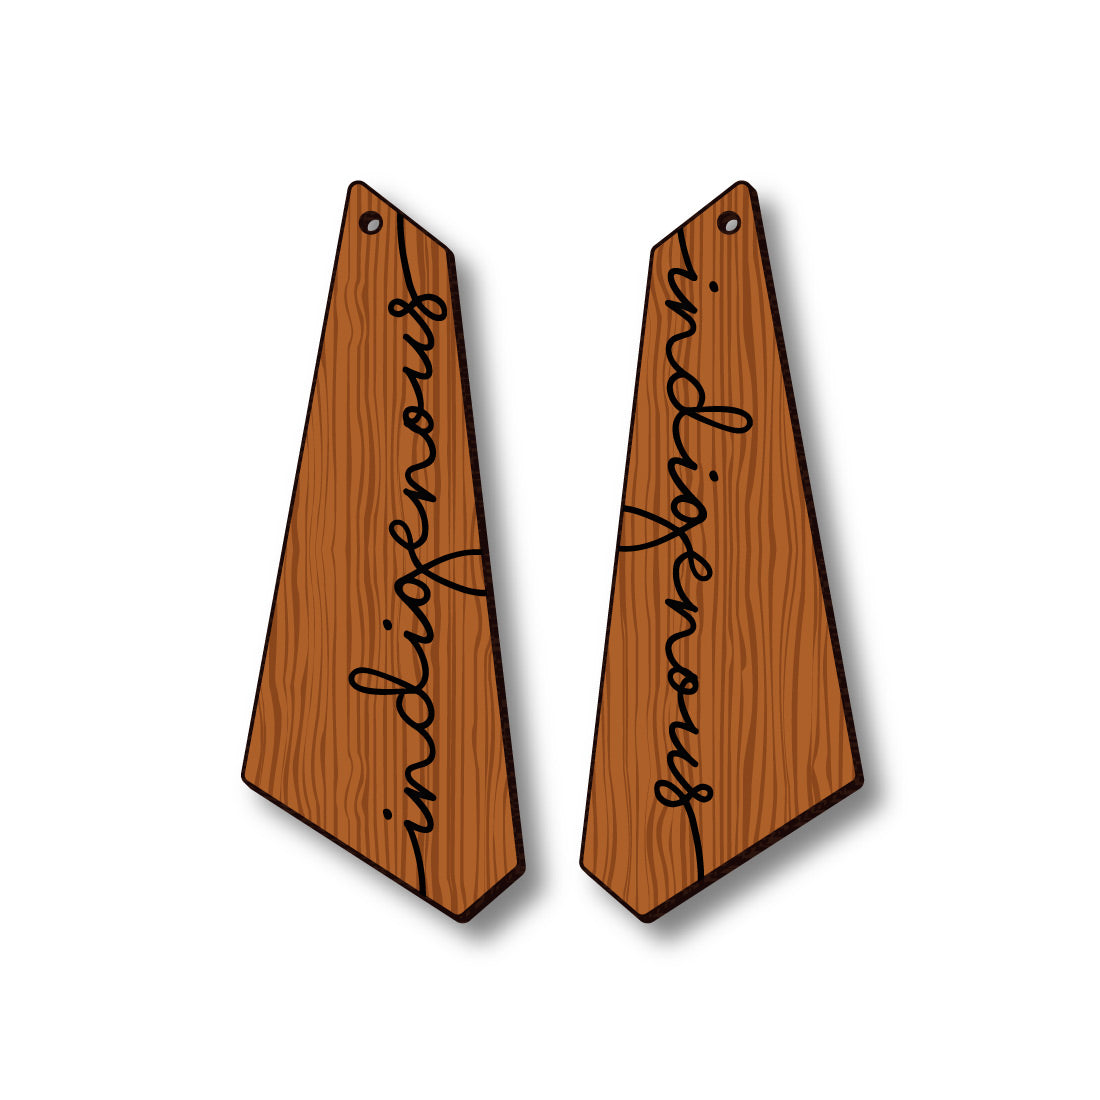 David Bernie Shop Laser Cut Cherry Wood Earrings Indigenous II